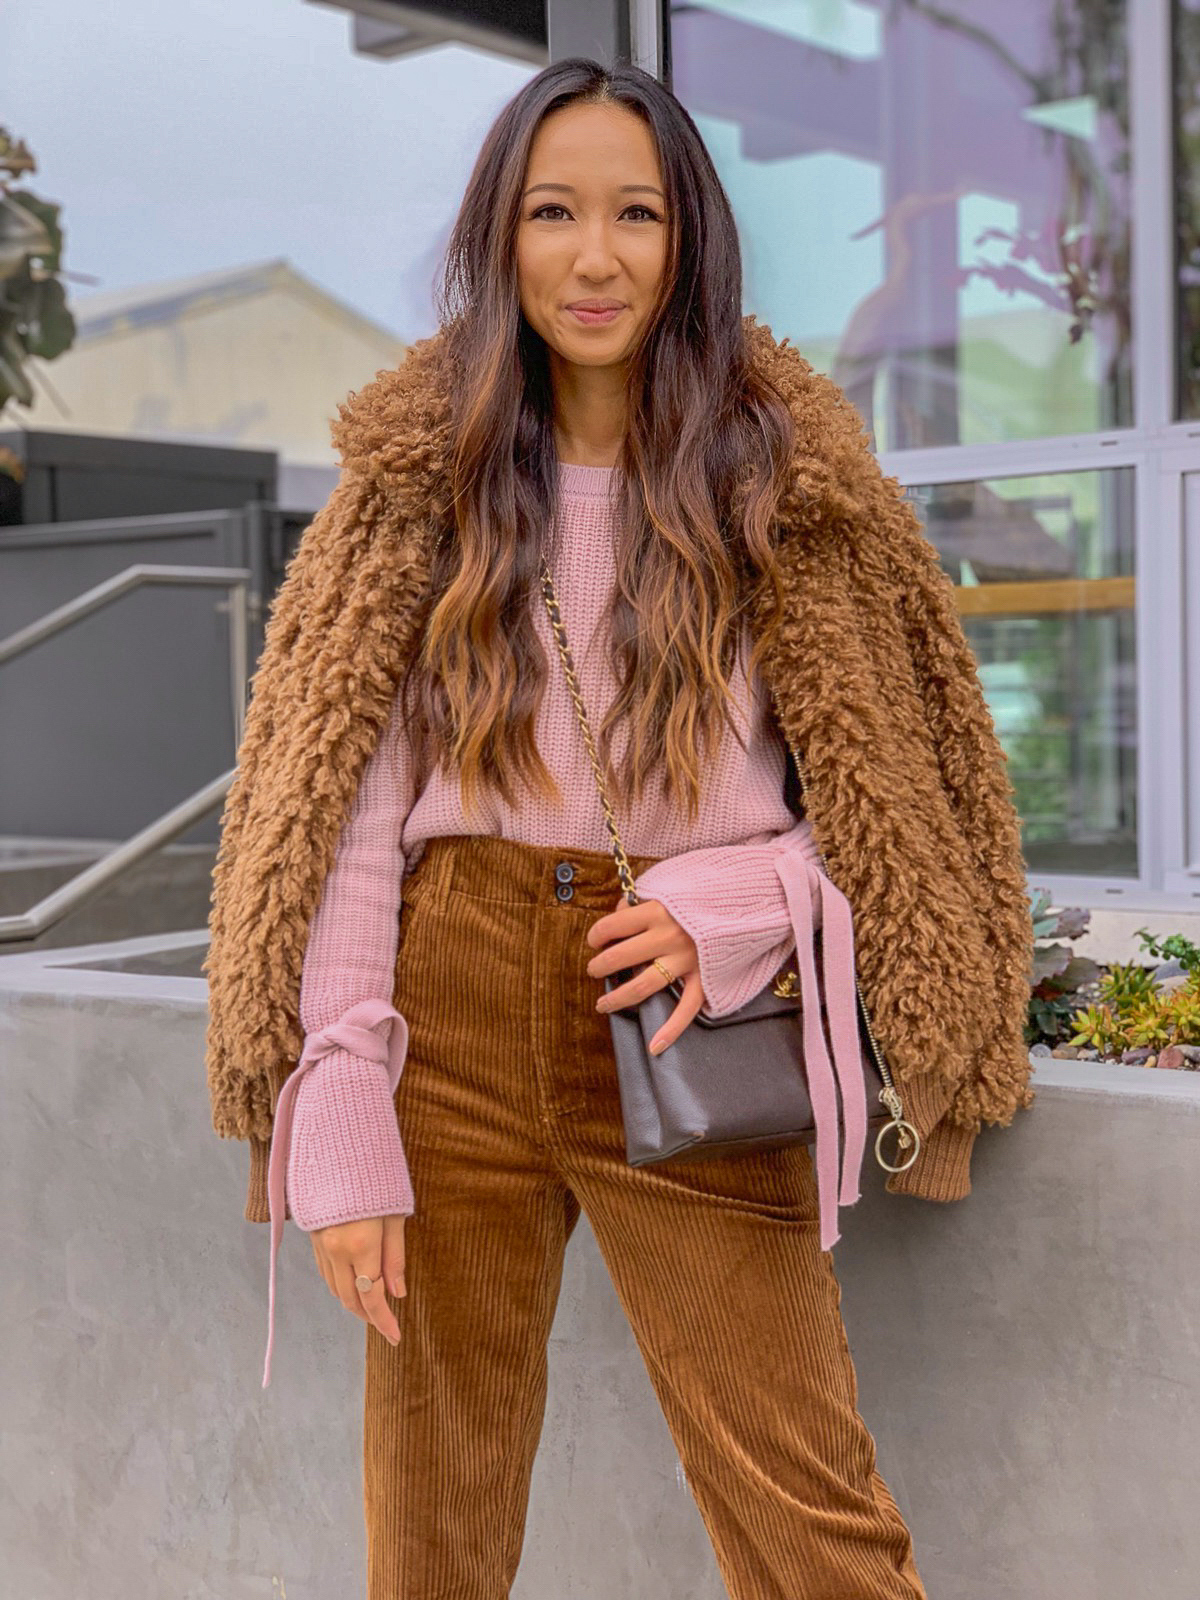 how to wear this teddy bear trend? - Simply, however you fancy.I however love channelling 70 vibes. Think floaty midi dresses, wide leg trousers and ankle boots or platforms.